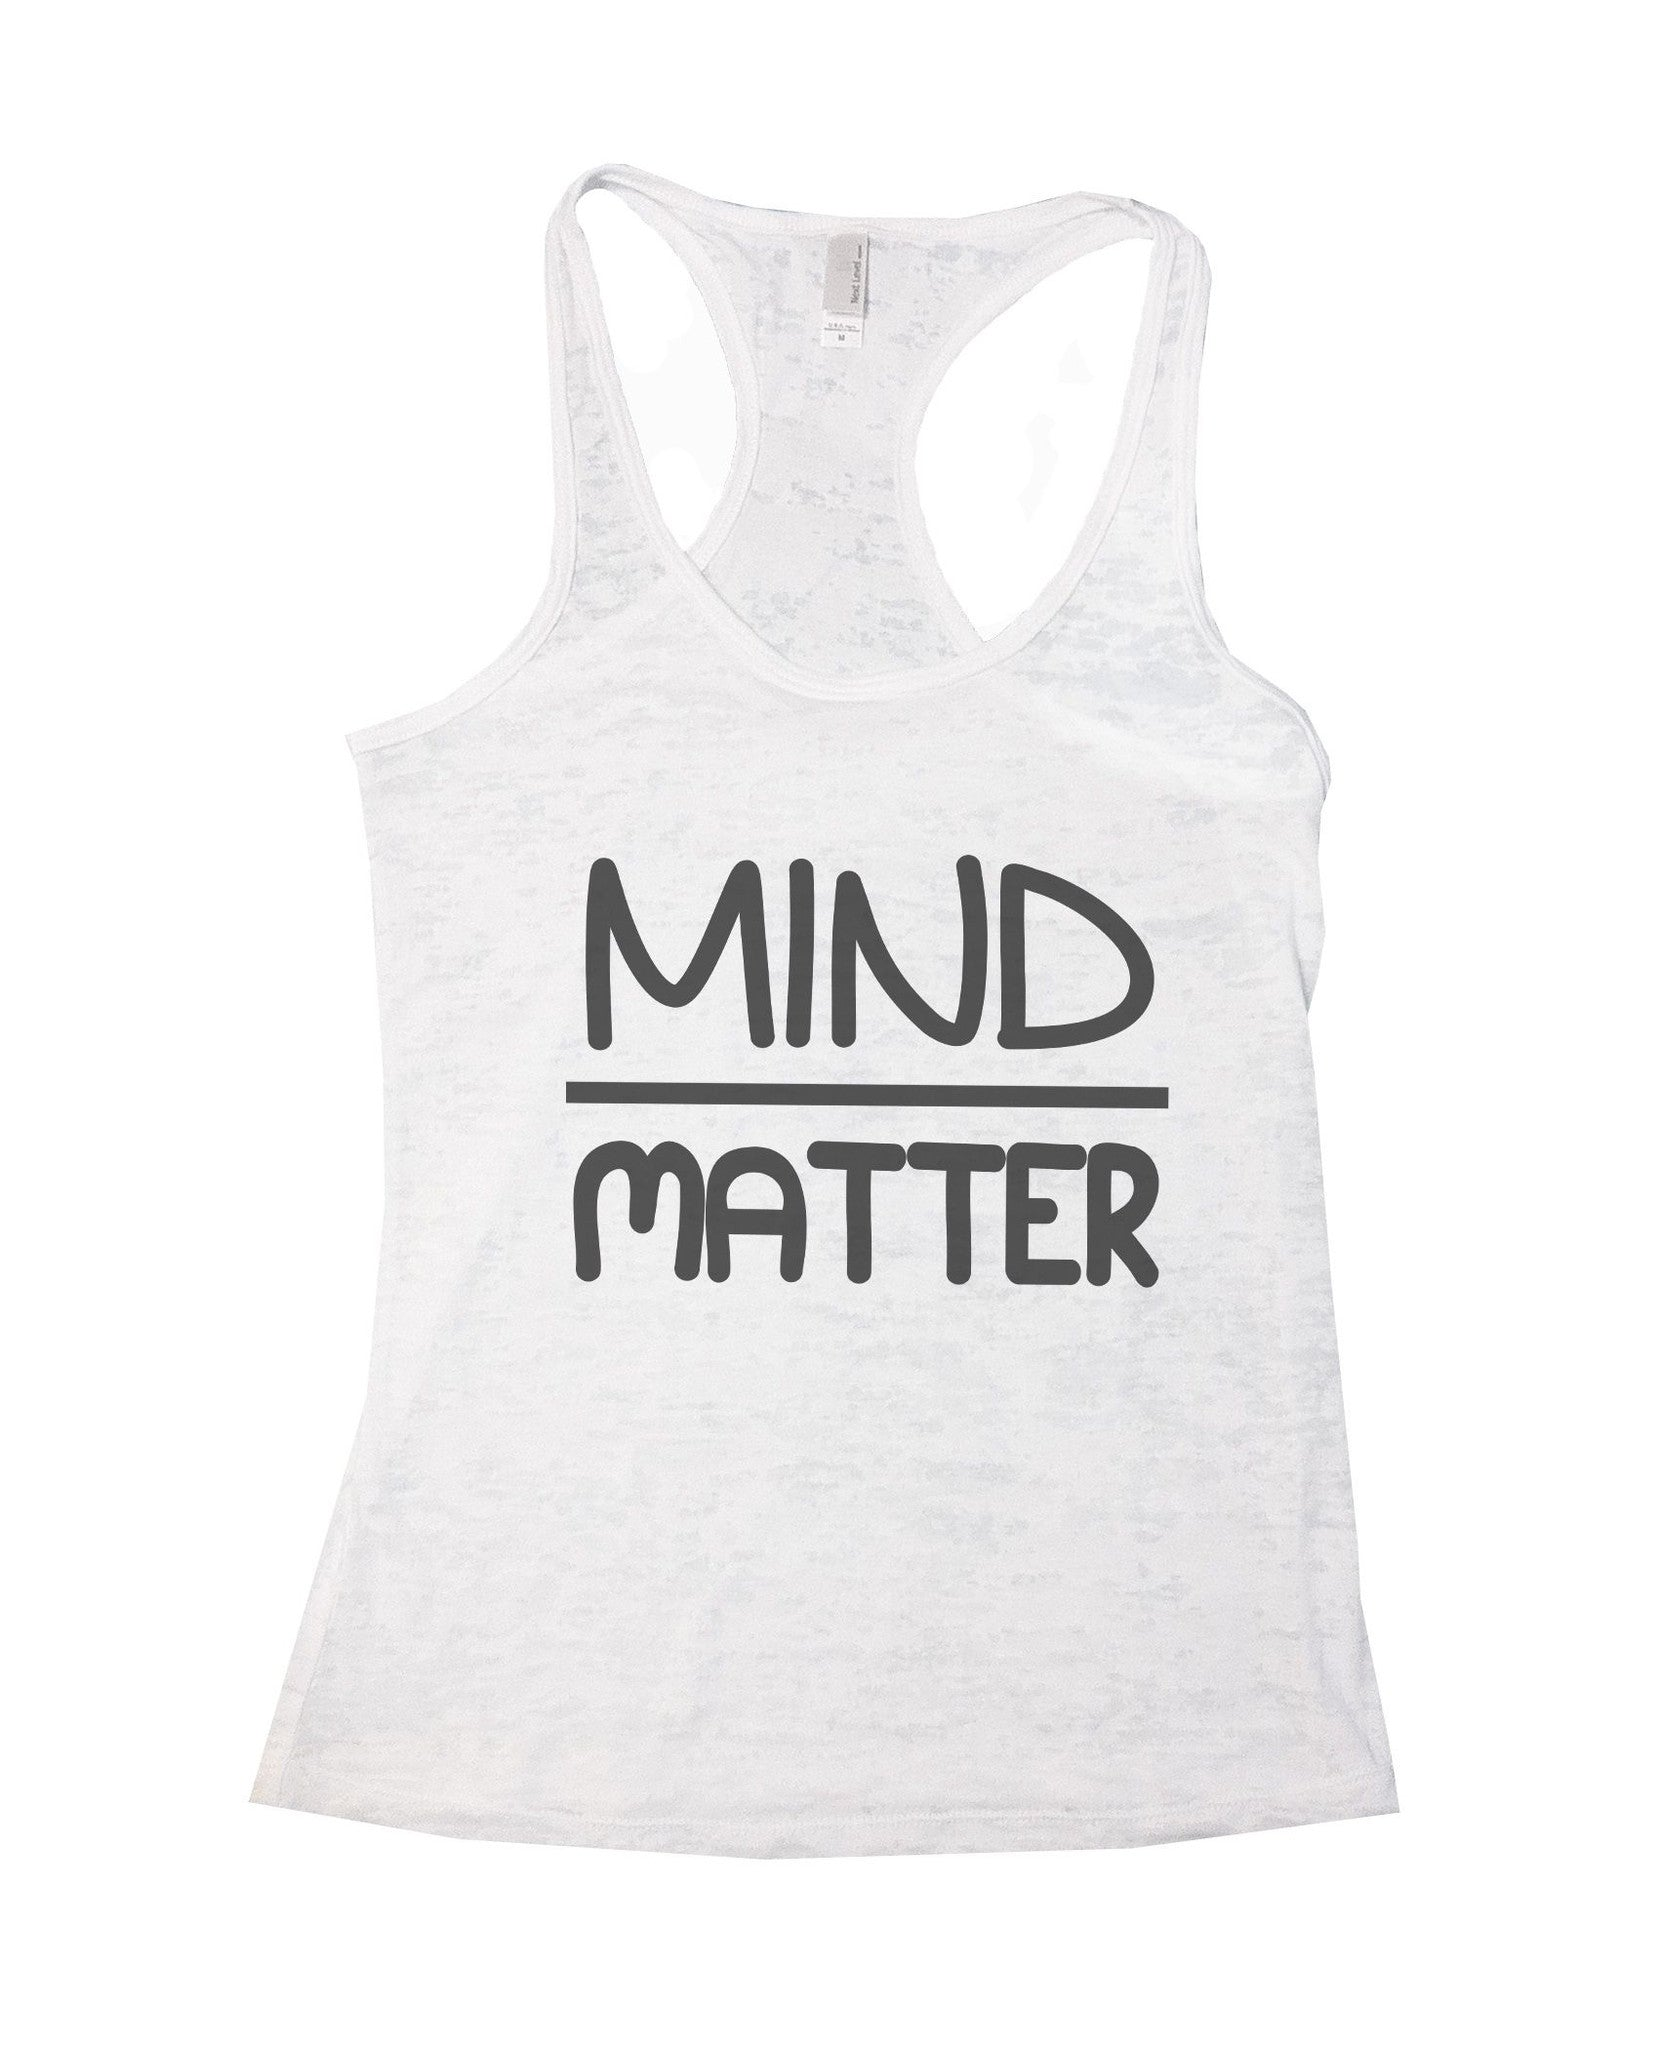 Mind Matter Burnout Tank Top By BurnoutTankTops.com - 655 - Funny Shirts Tank Tops Burnouts and Triblends  - 5